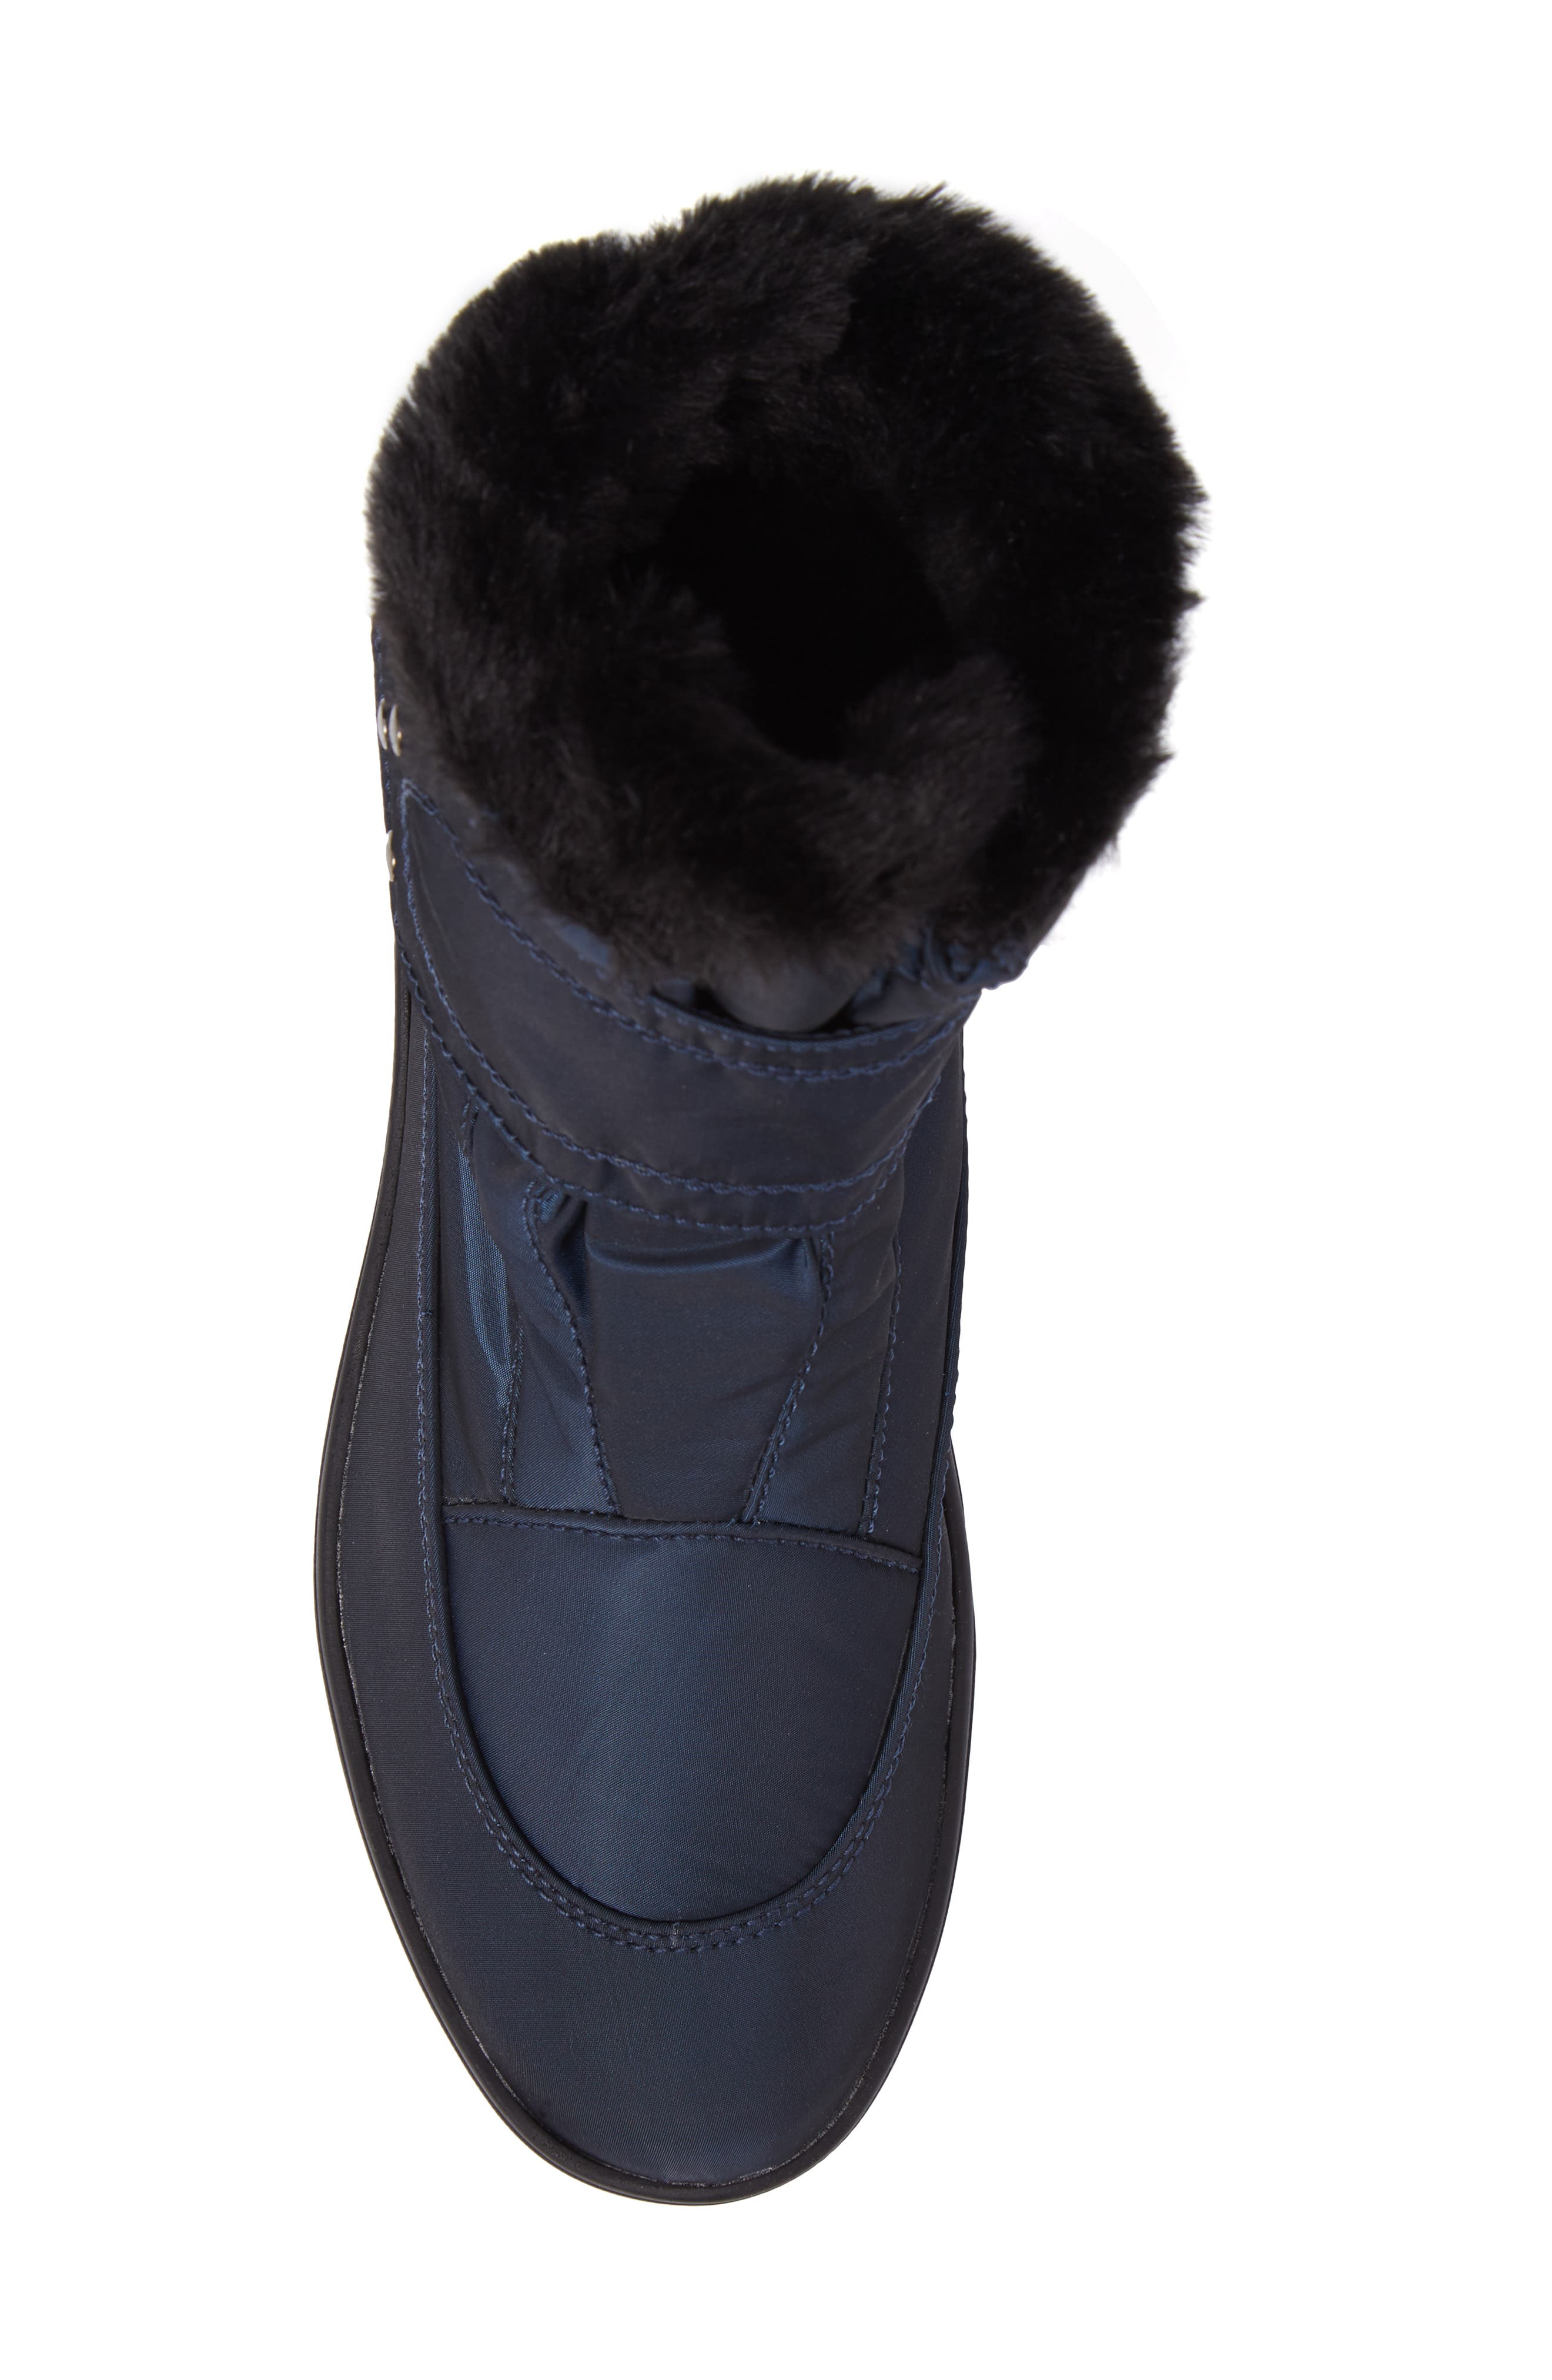 Shoes 'Moscou' Snow Boot,                             Alternate thumbnail 22, color,